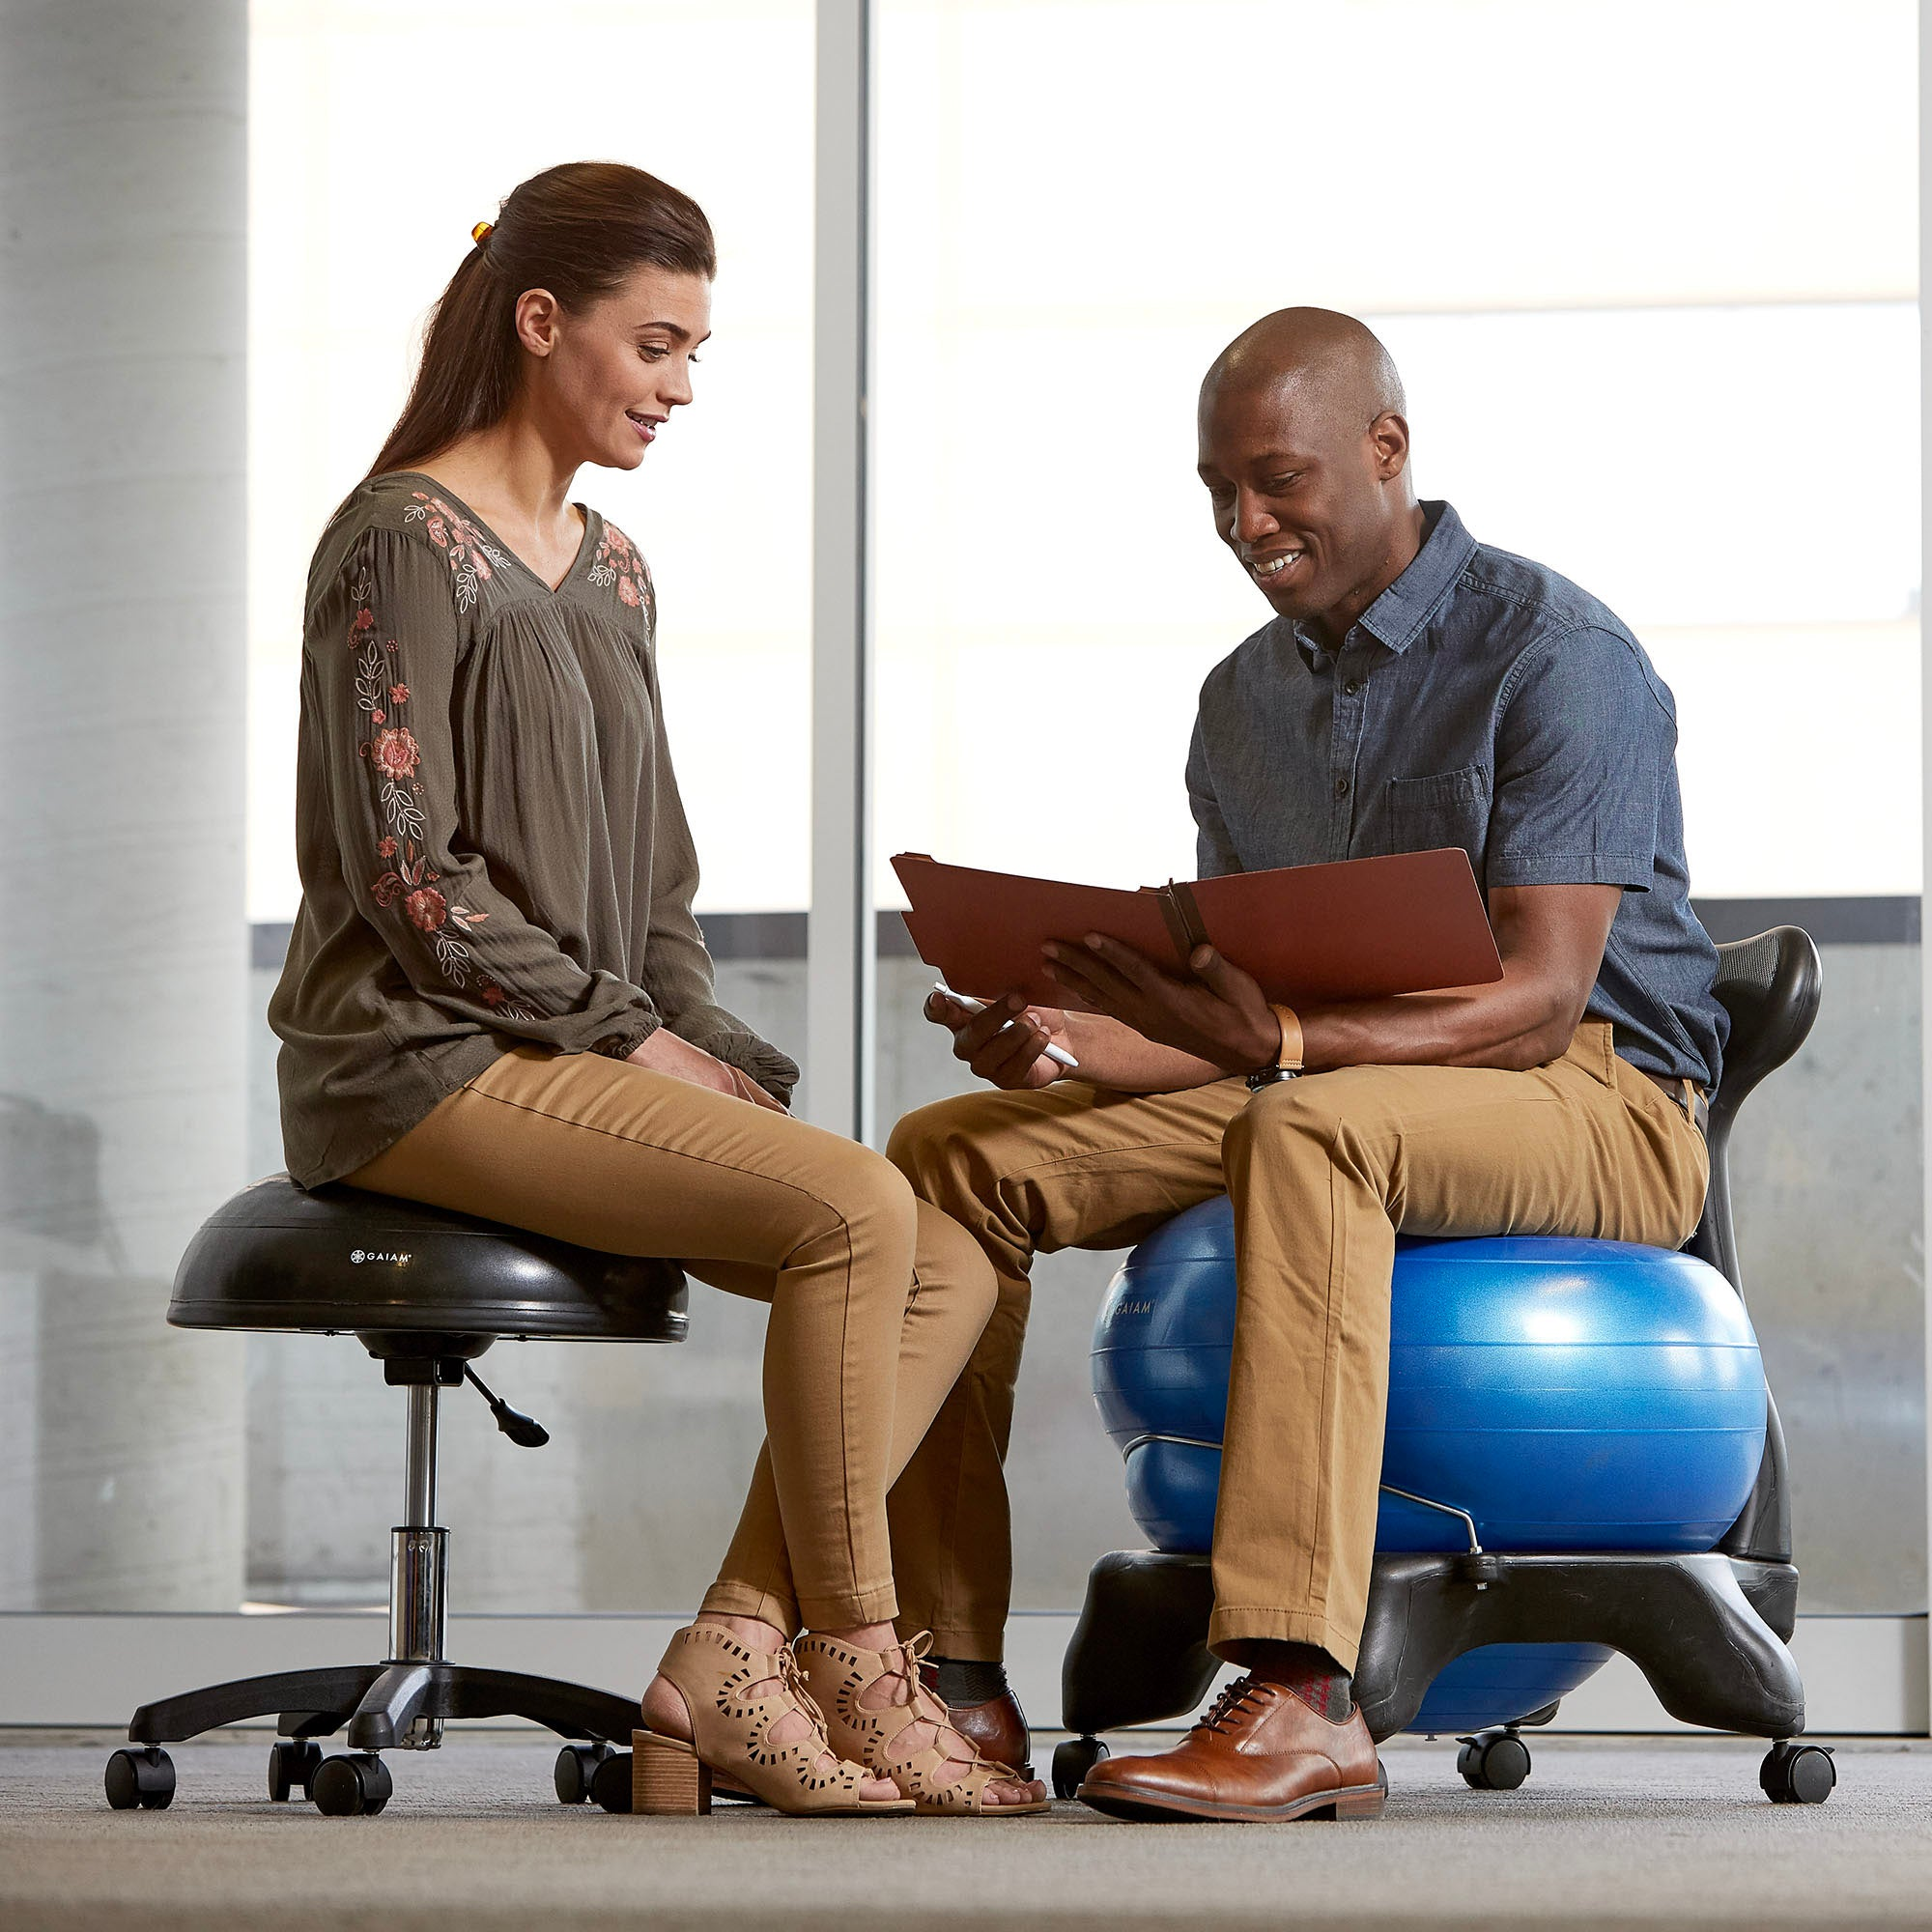 super popular 7be64 46ae7 ... Man sitting on the Blue Classic Balance Ball Chair talking to a woman  ...